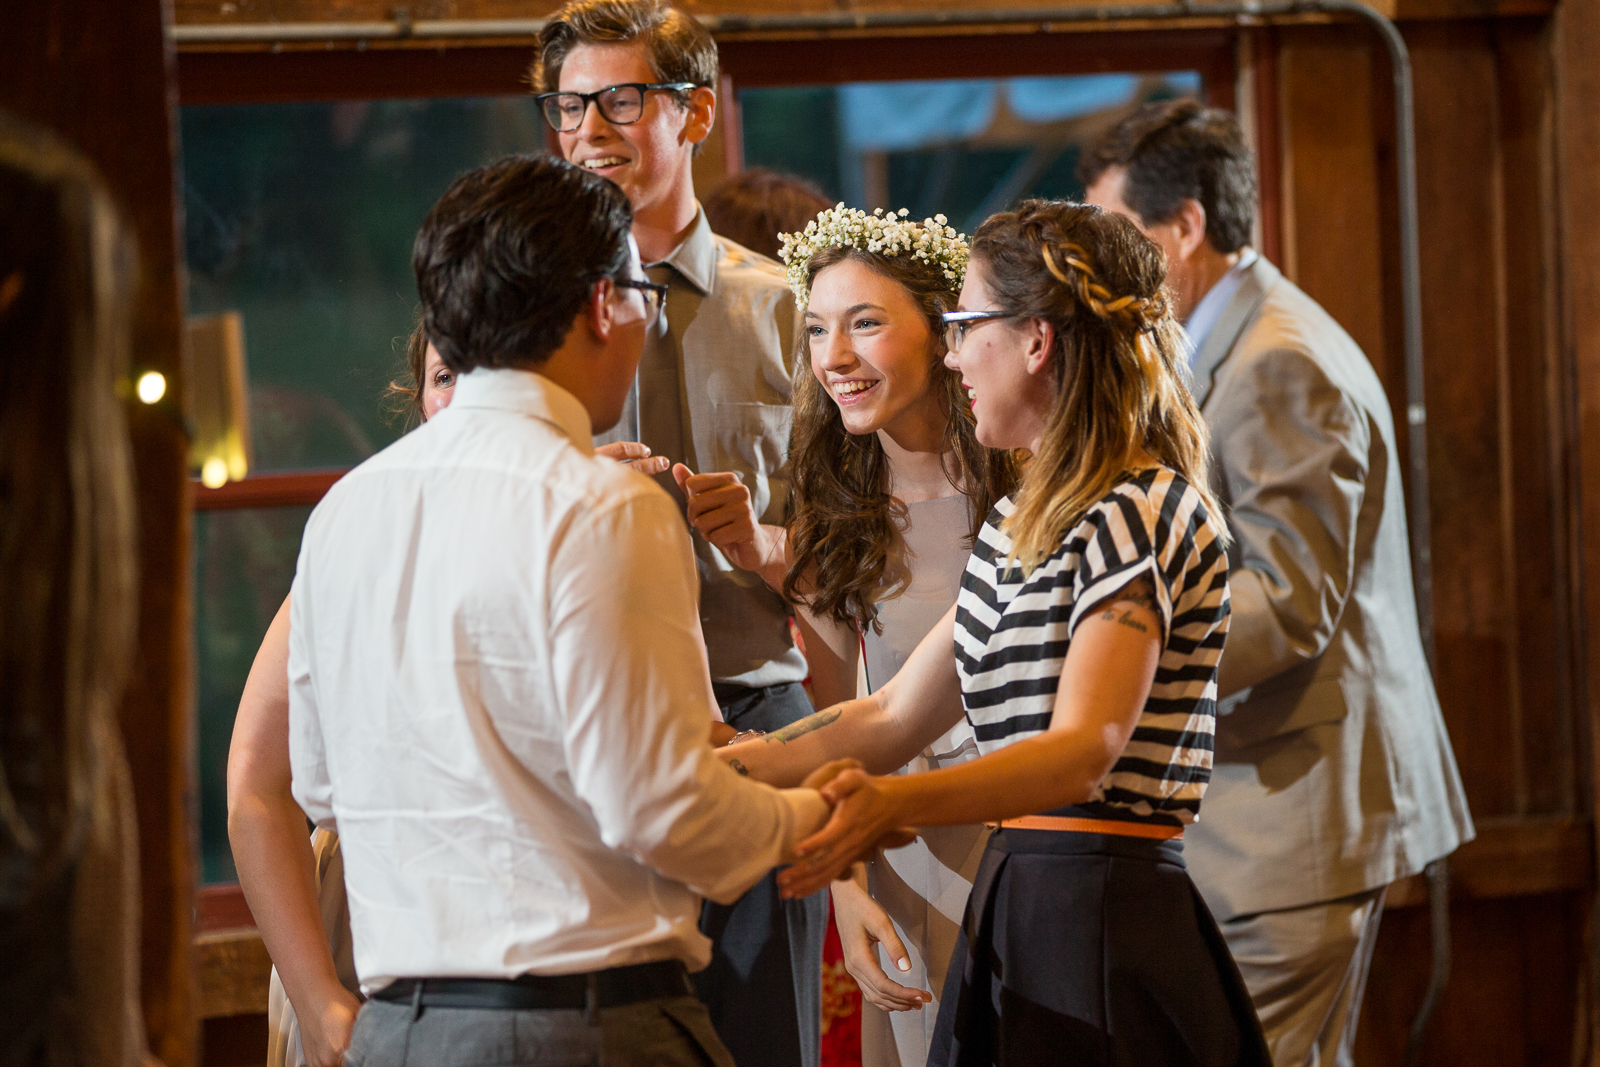 Four_Wings_Photography_Wedding_Red_Barn_at_Hampshire_College-44.jpg